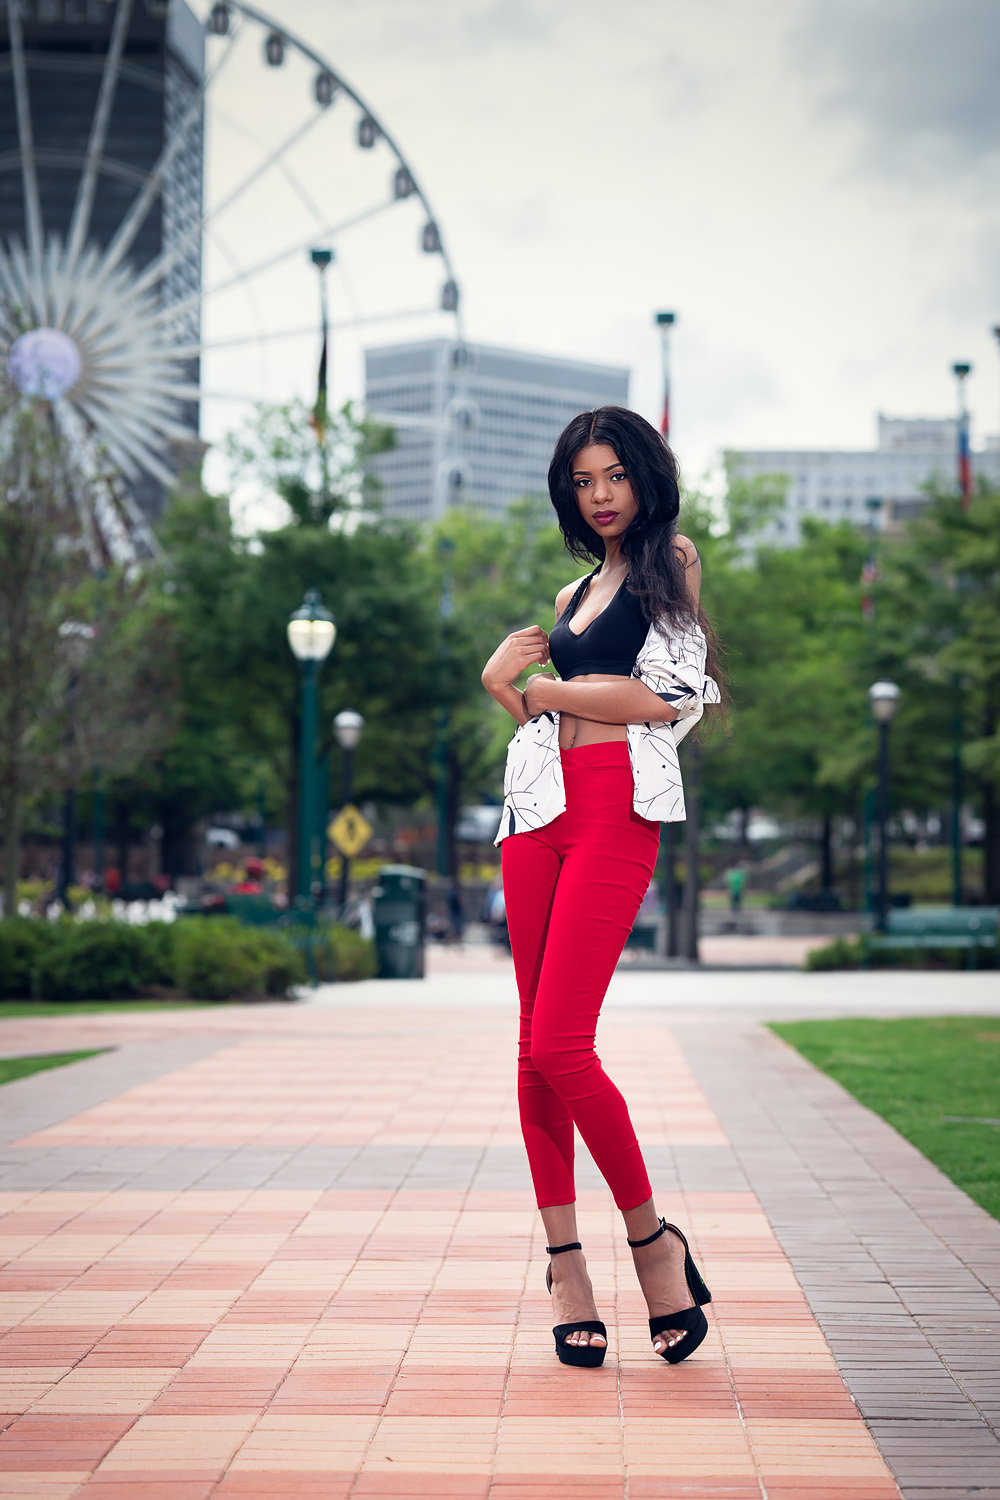 Centennial Olympic Park shoot